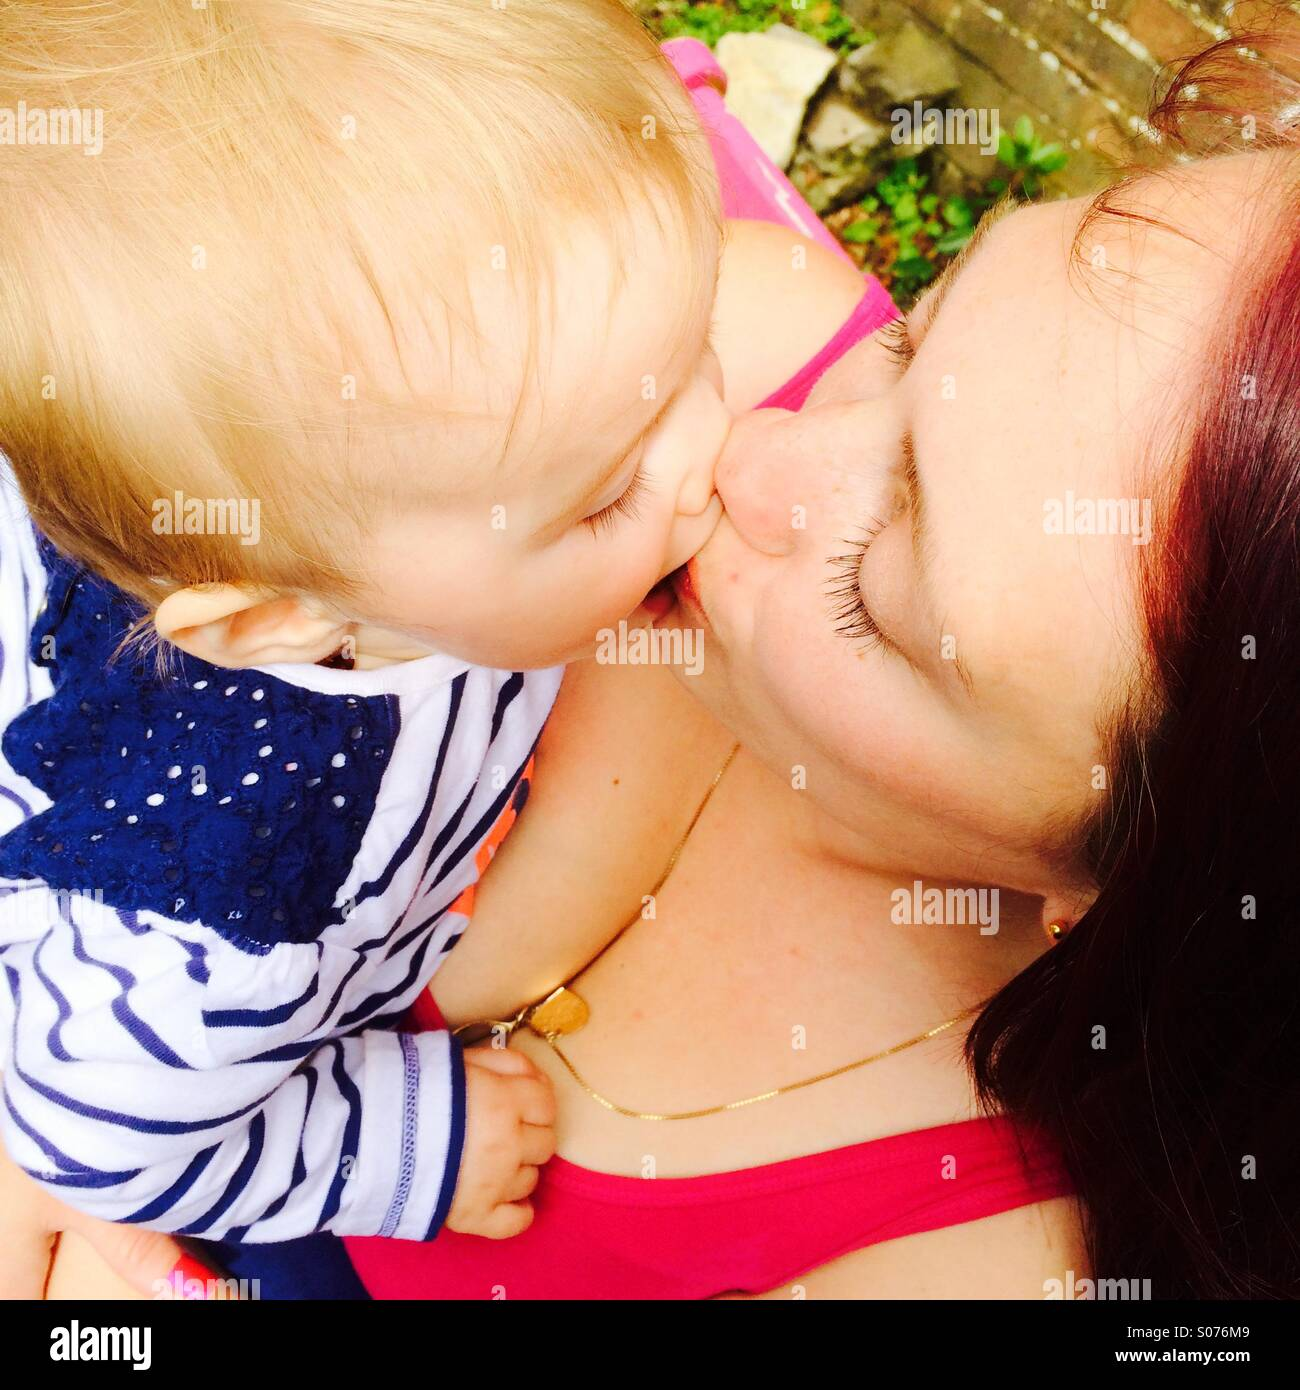 Mother and baby kissing - Stock Image